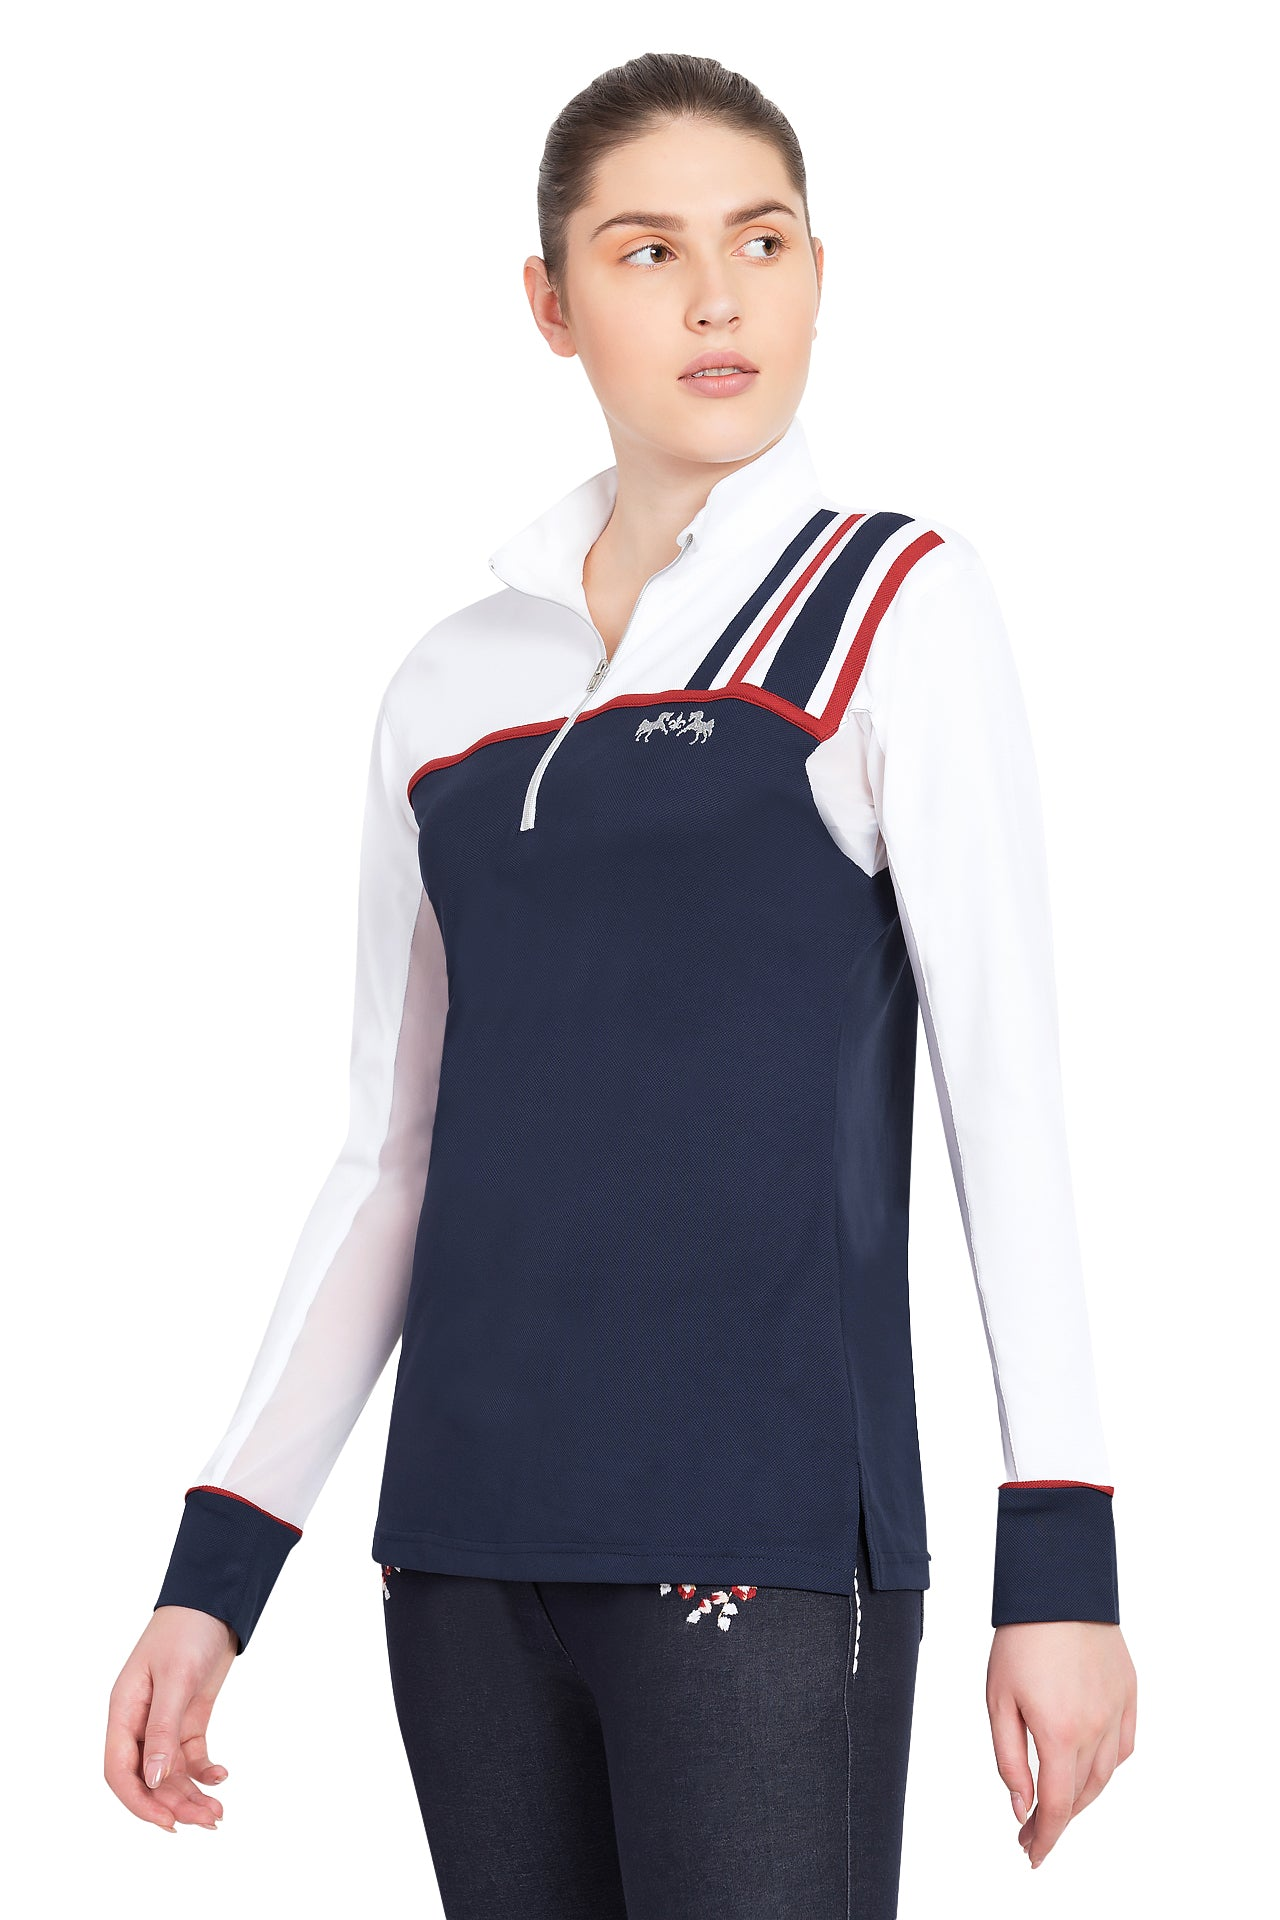 Ladies Nicole EquiCool Long Sleeve Sport Shirt - Equine Couture - Breeches.com